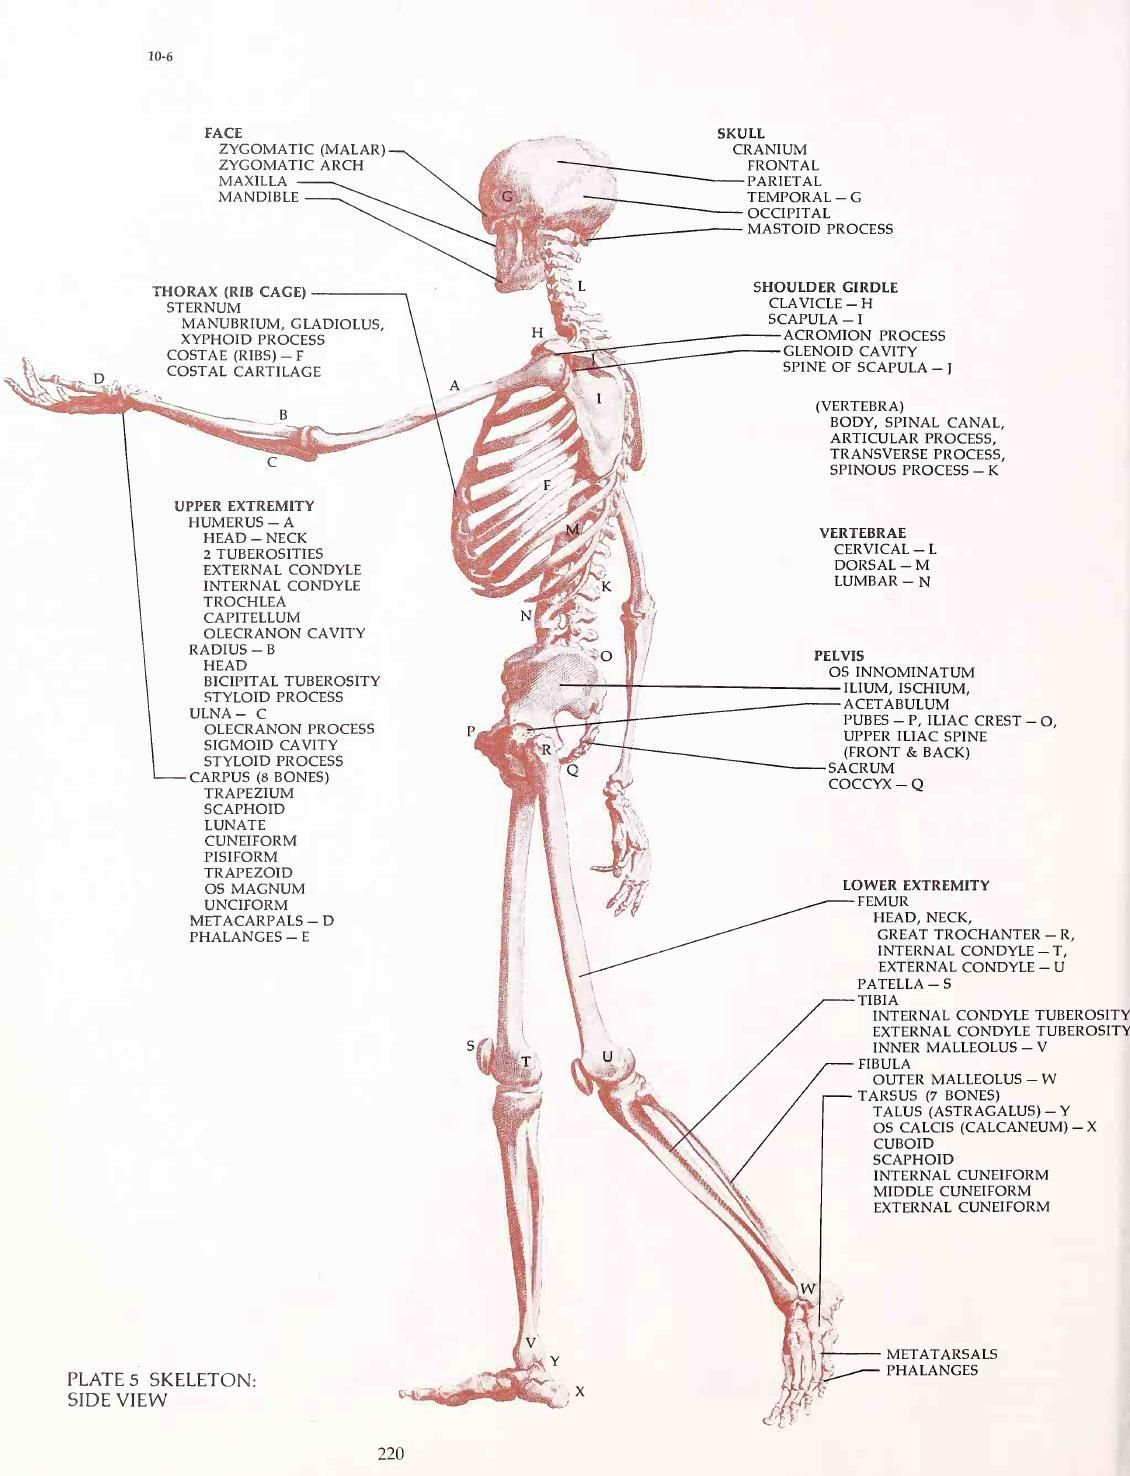 HUMAN ANATOMY AND FIGURE DRAWING | anatomy | Pinterest | Human ...